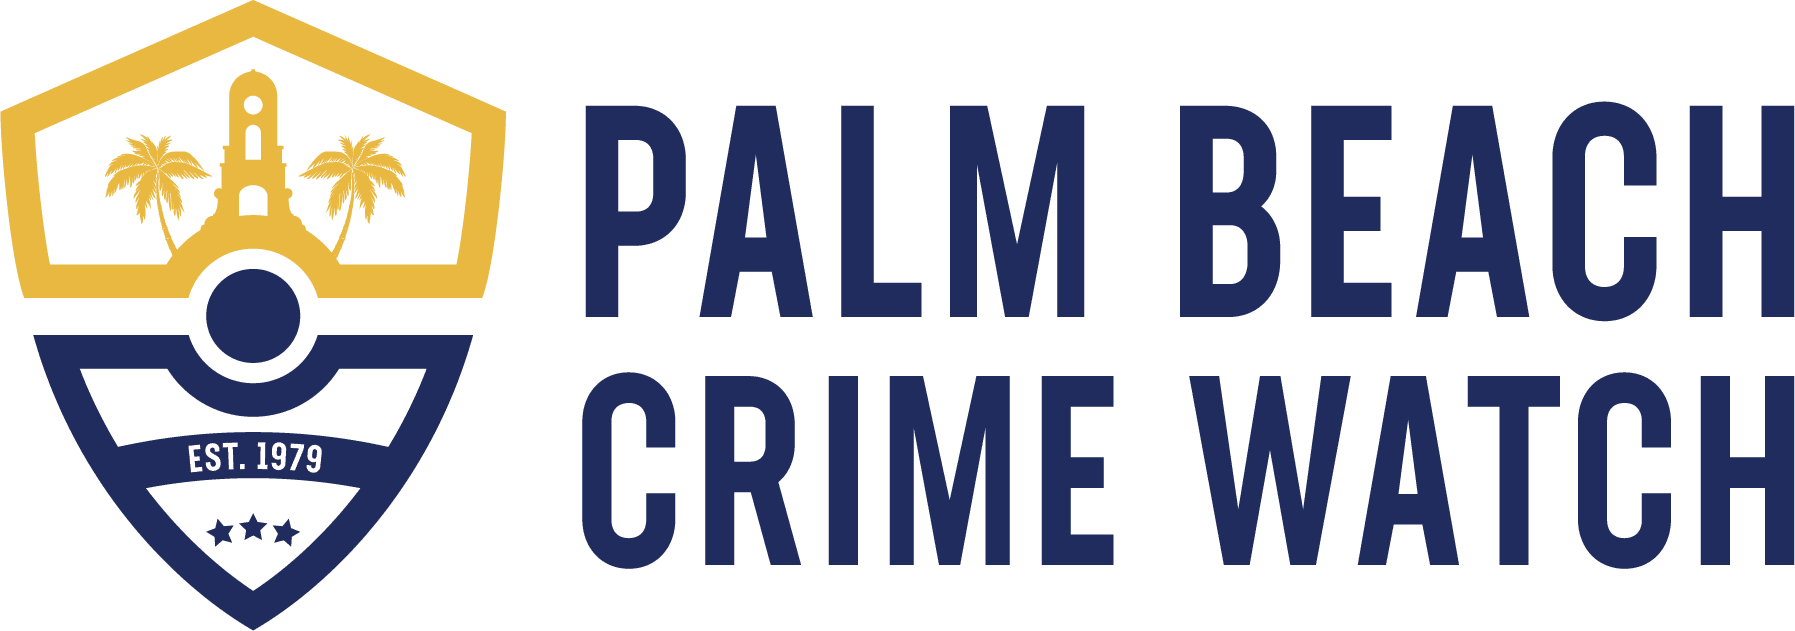 PBPFF Crime Watch Logo (Horizontal)